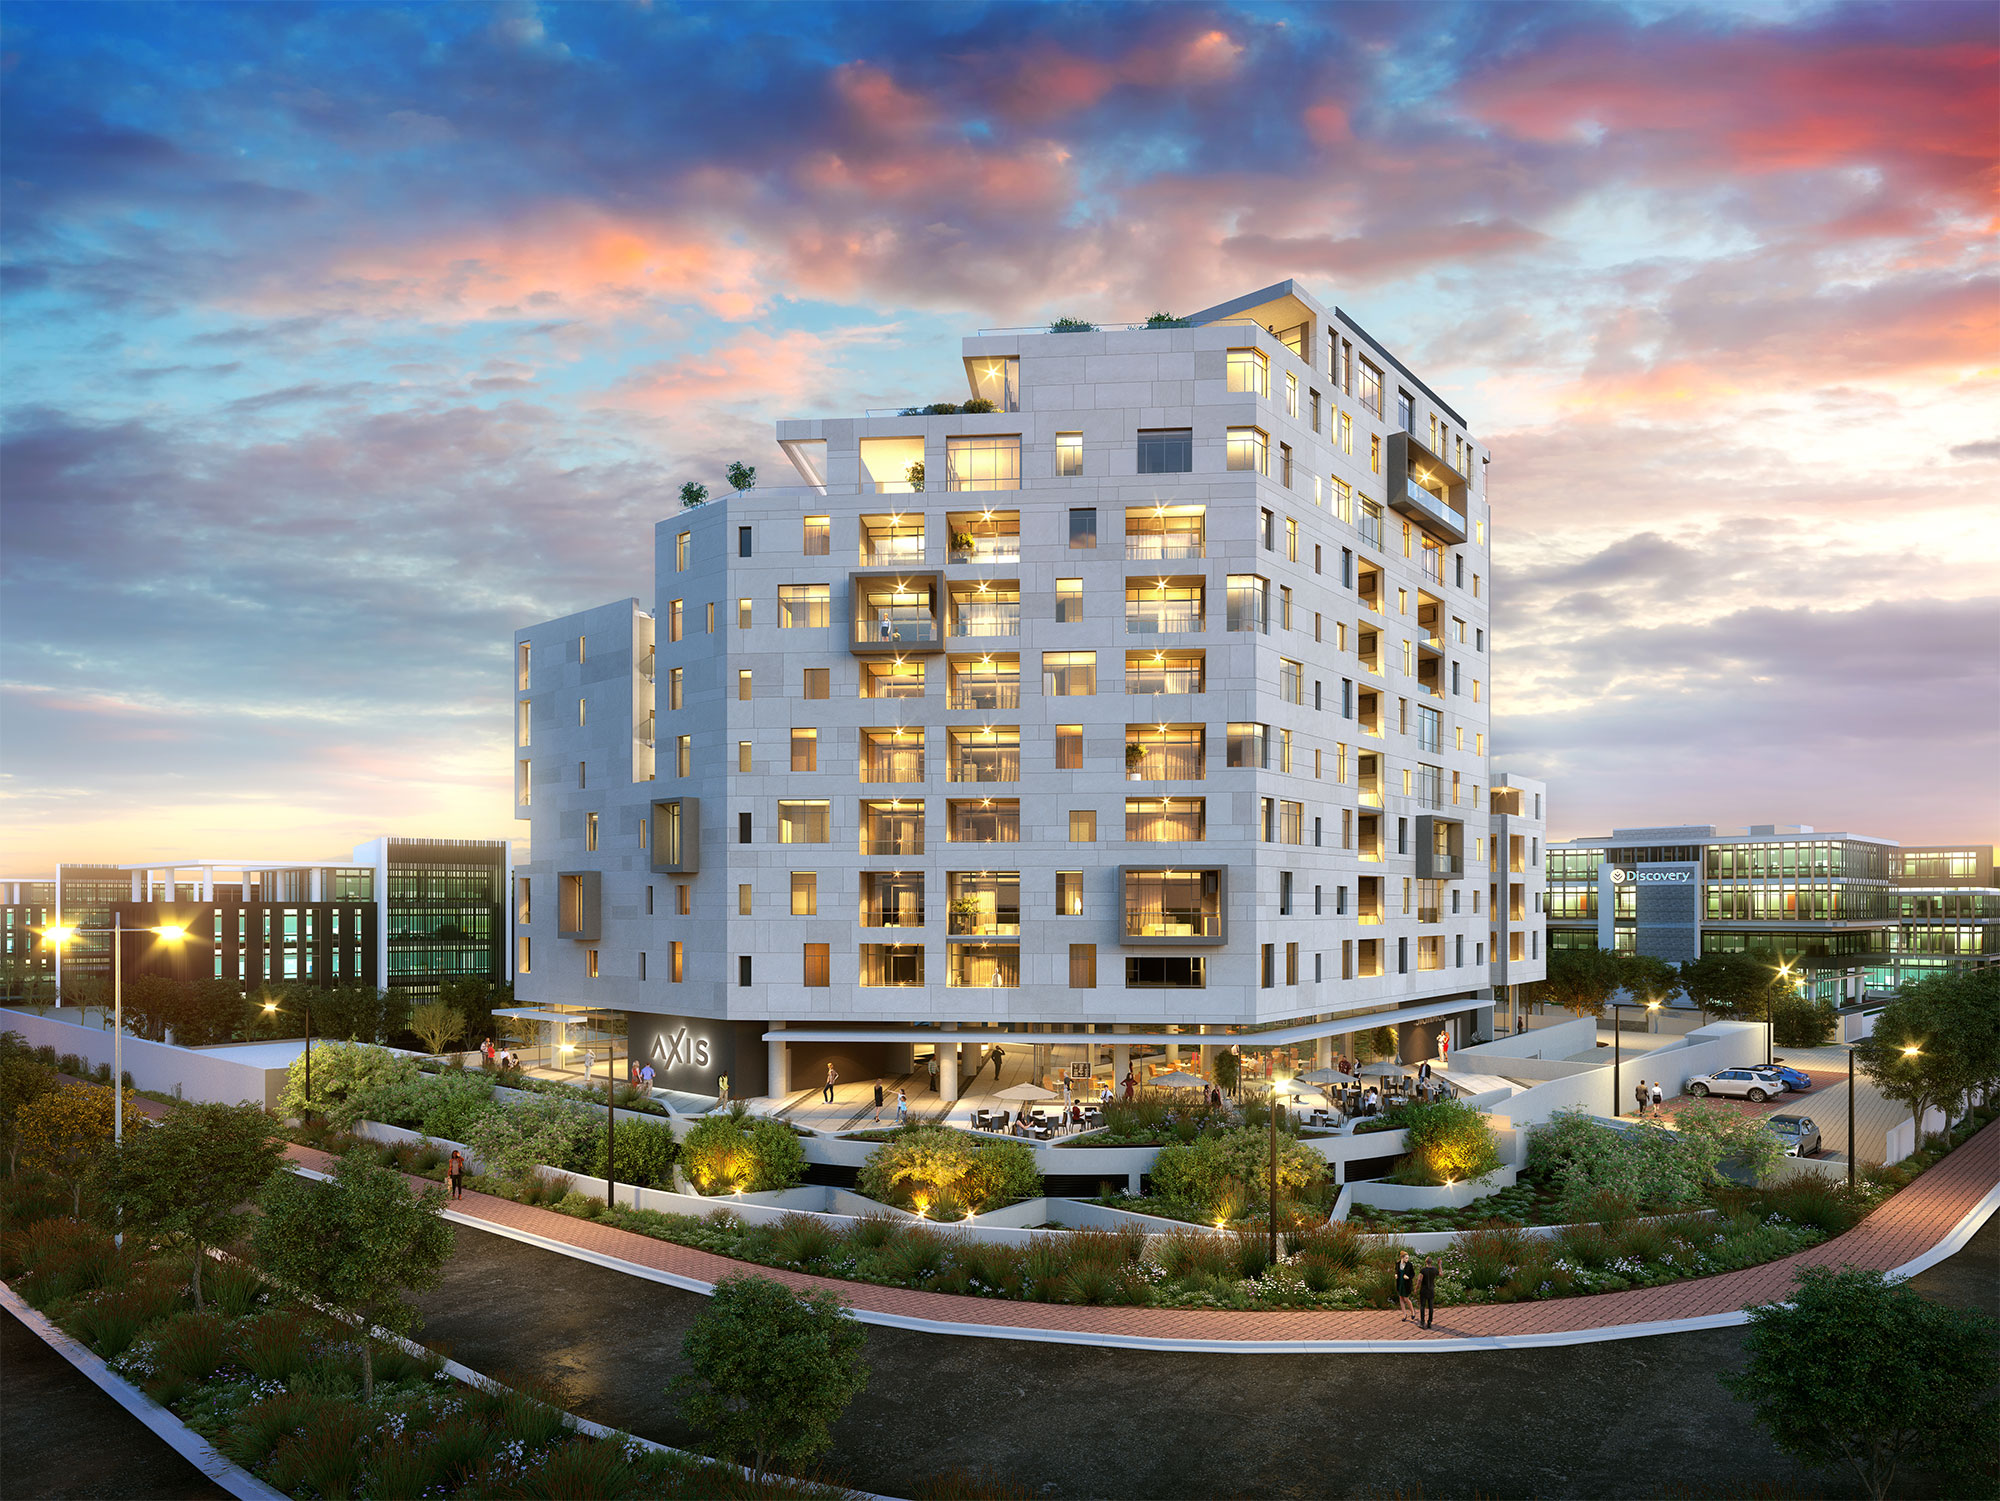 AXIS: LUXURY CENTURY CITY APARTMENTS FROM R3,5M